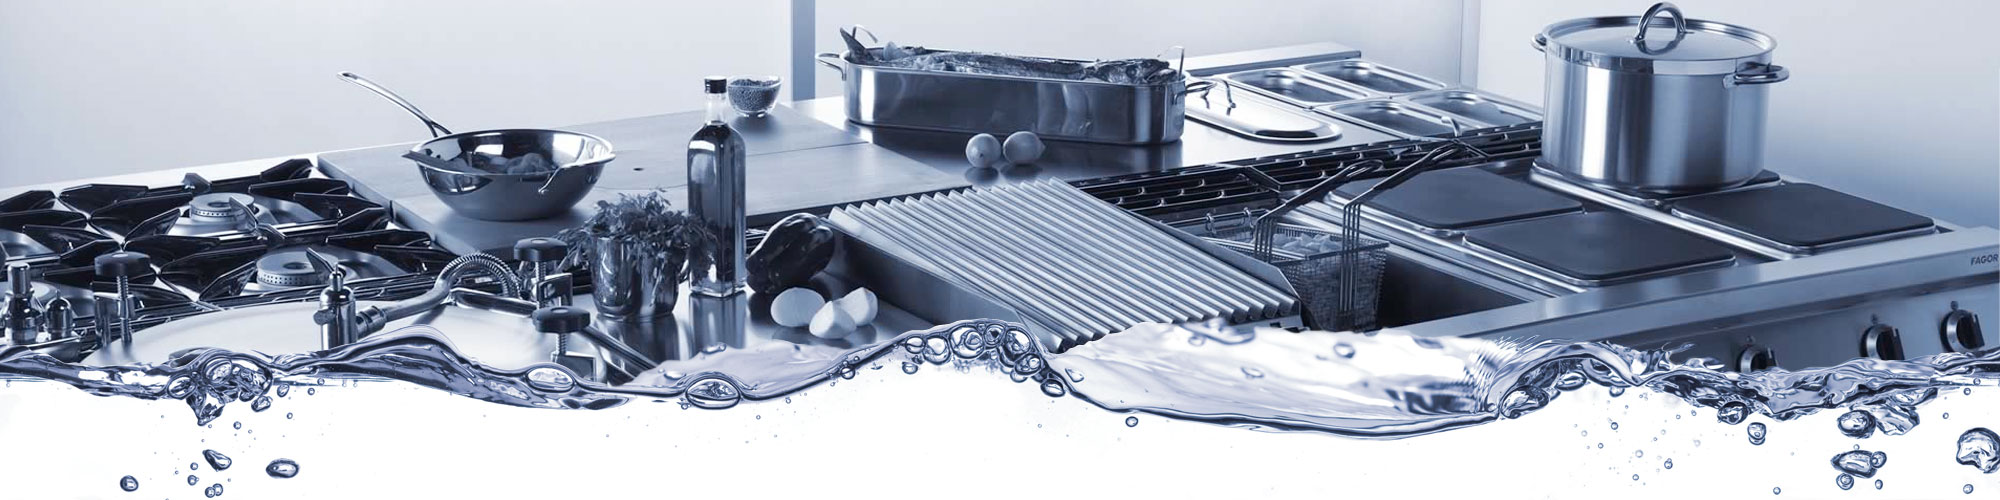 fagor-cooking-kitchen-dishwashers